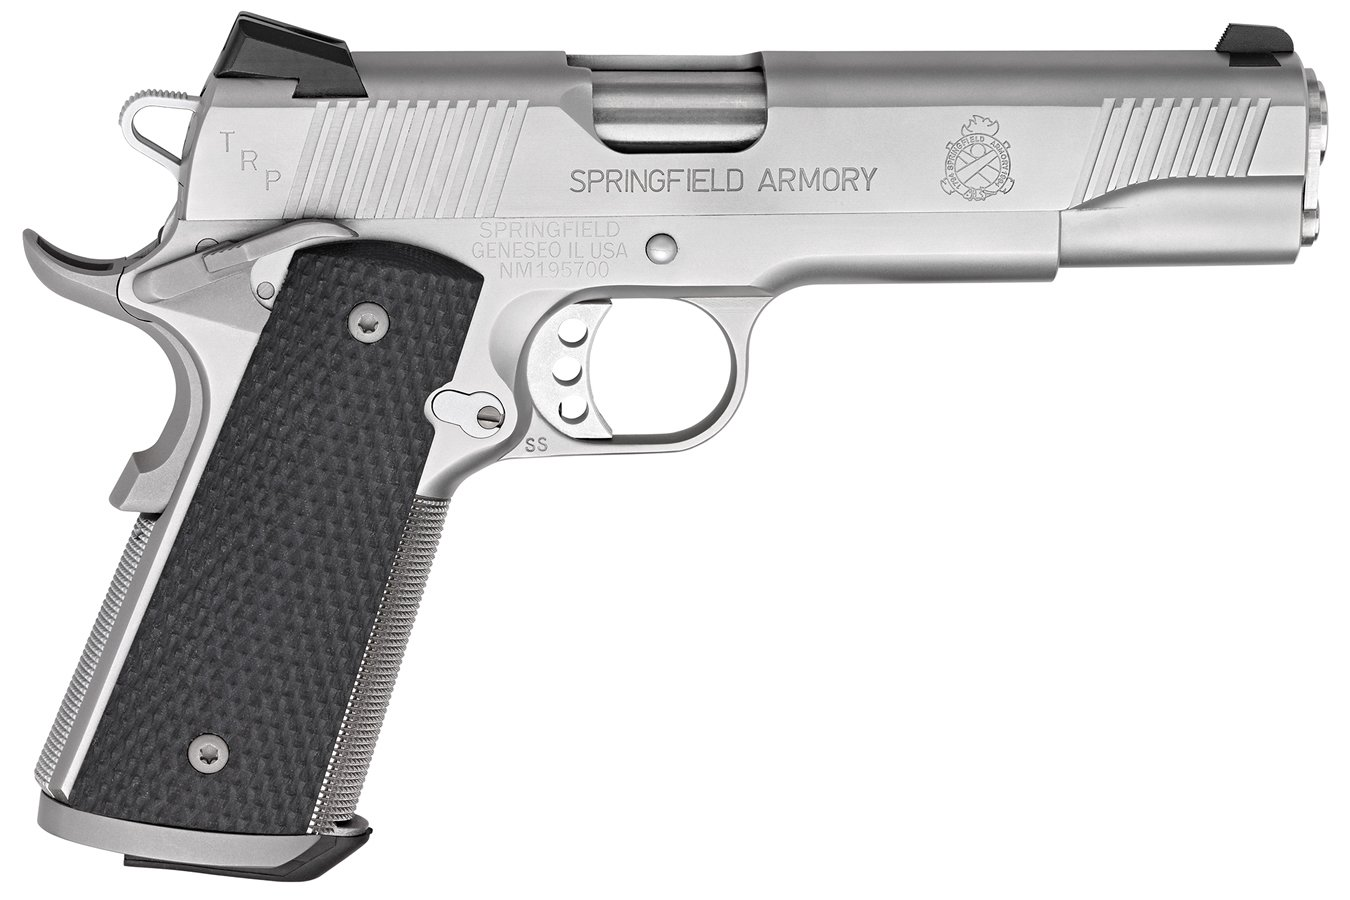 Springfield TRP Stainless  45 ACP 5-inch 7Rds - $1193 99 ($7 99 S/H on  firearms)